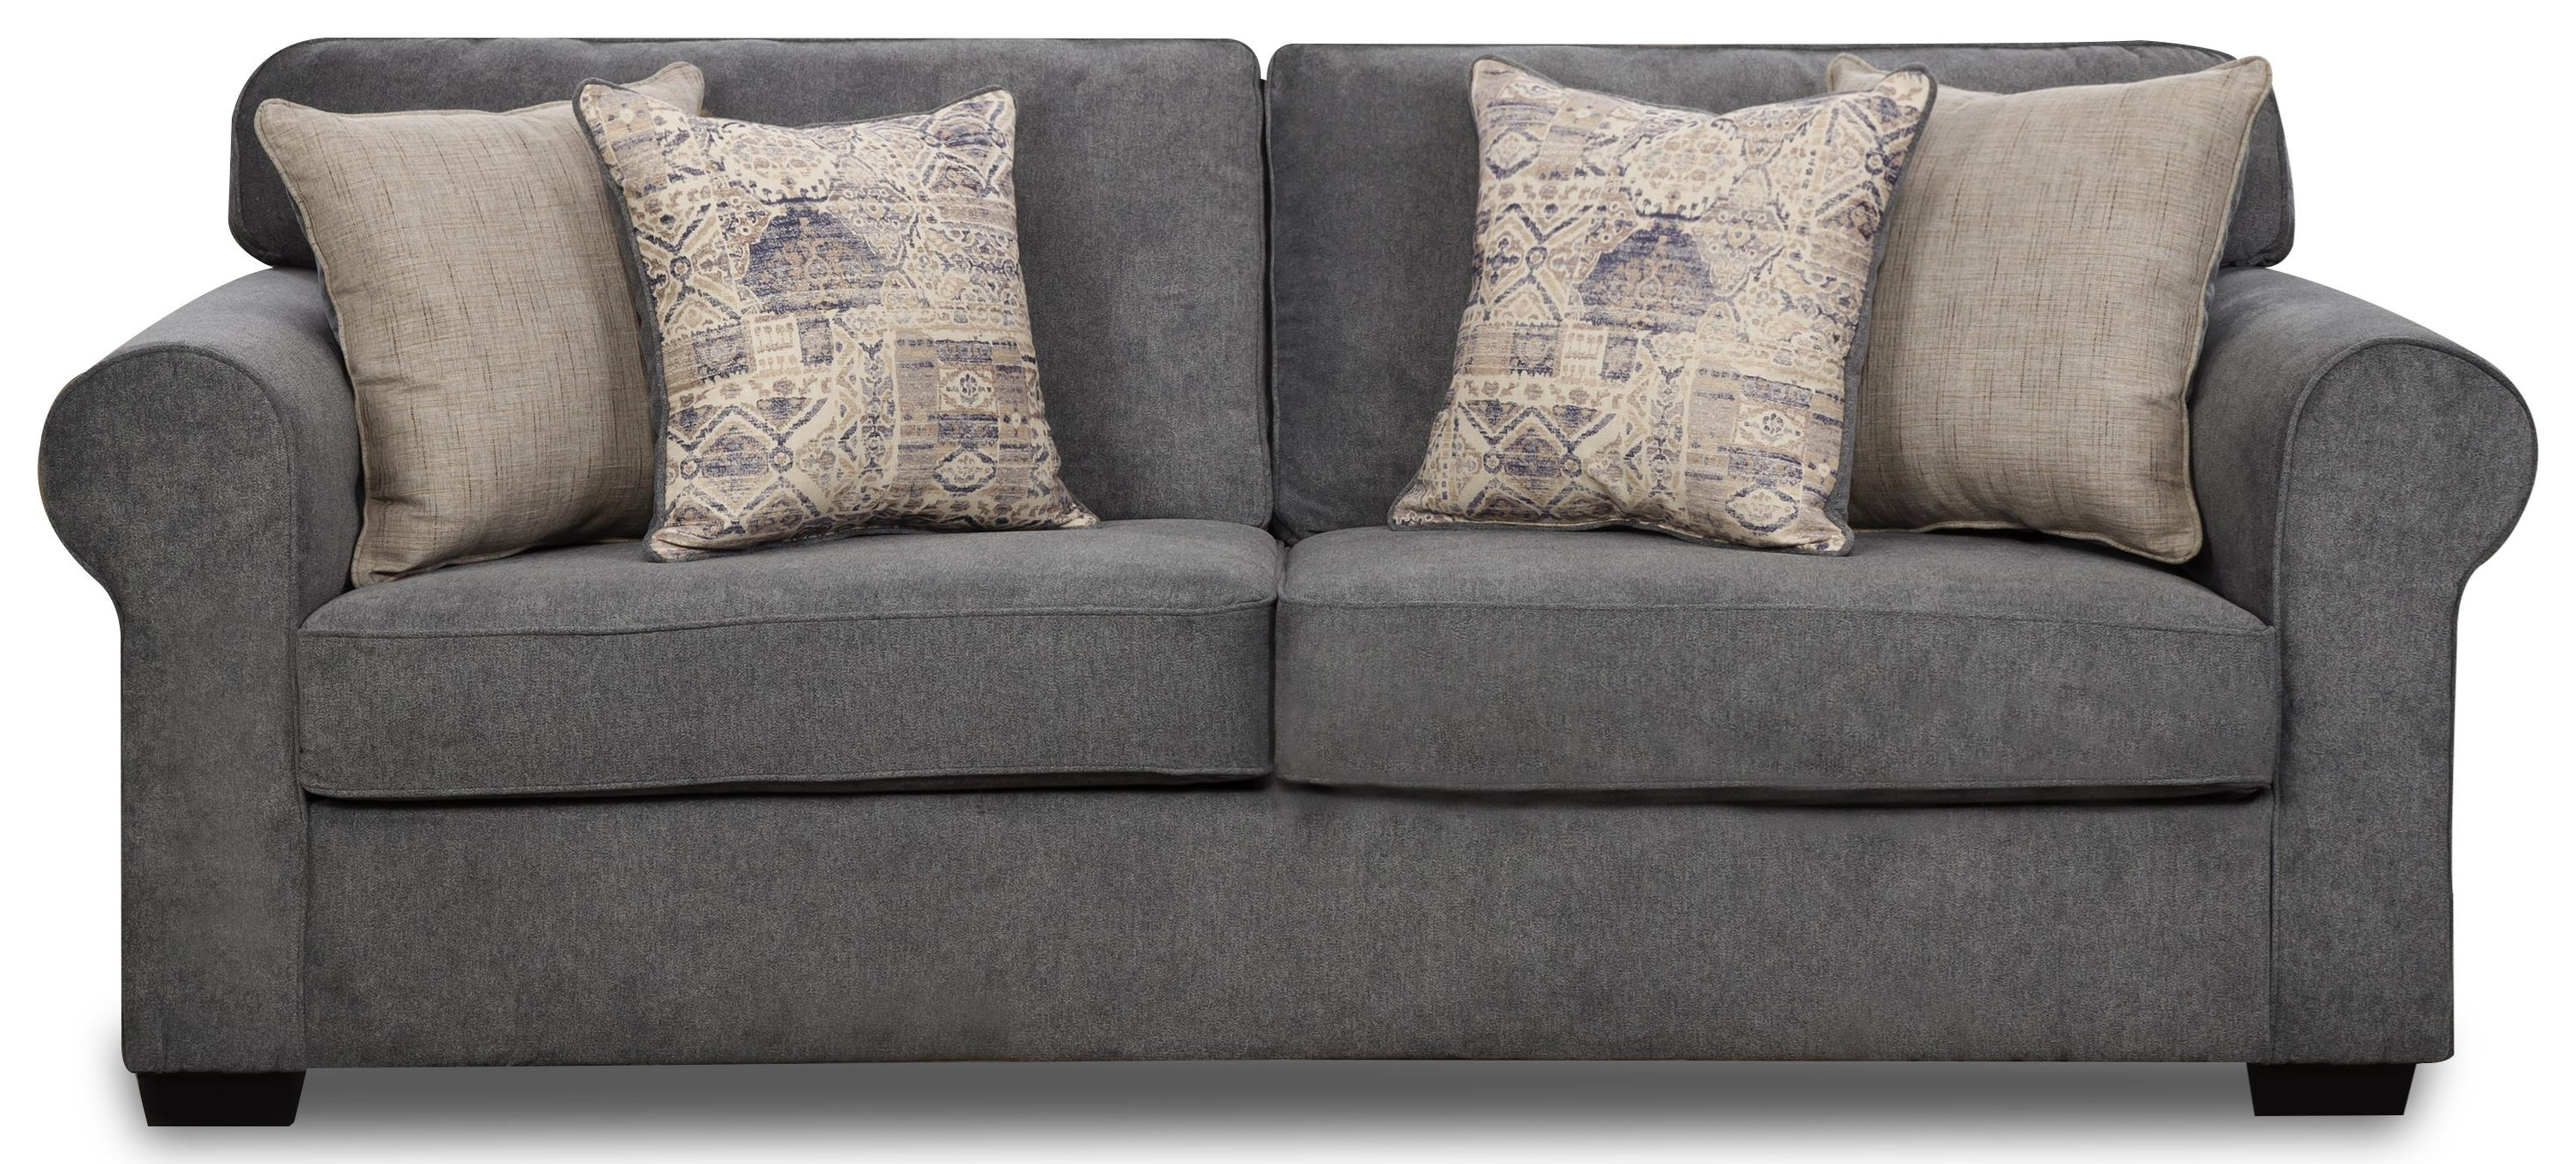 Slate Sofa by Behold Home at Darvin Furniture